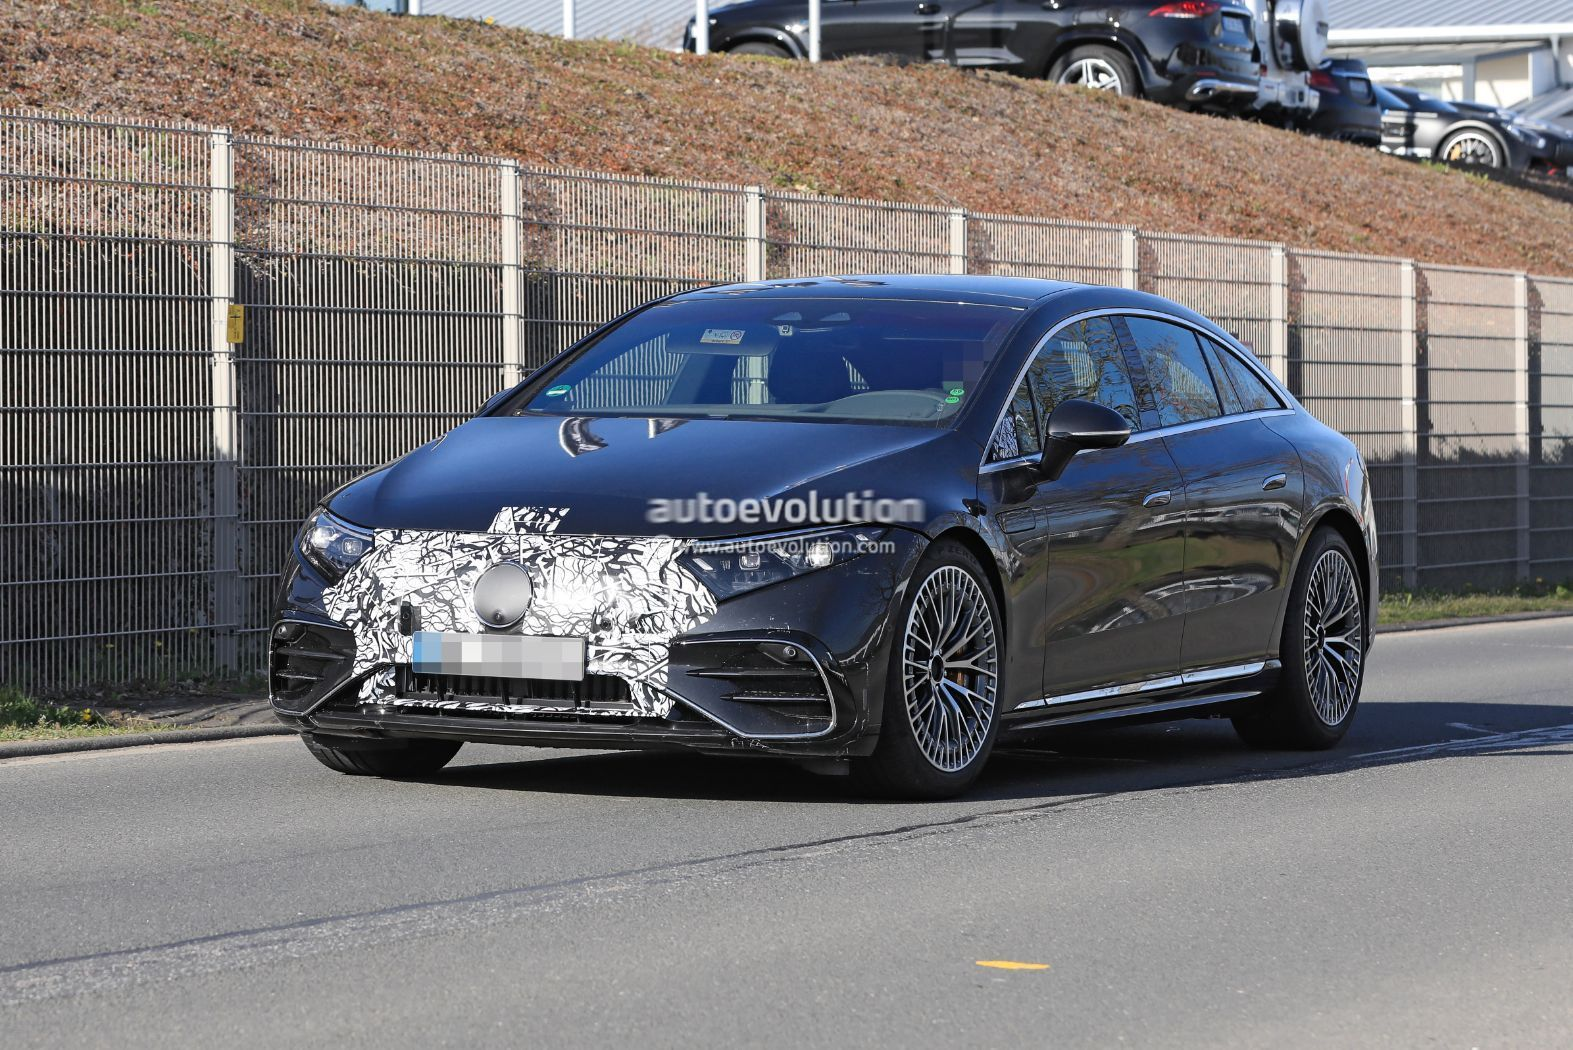 mercedes-amg-eqs-53-confirmed-with-751-hp,-blistering-acceleration